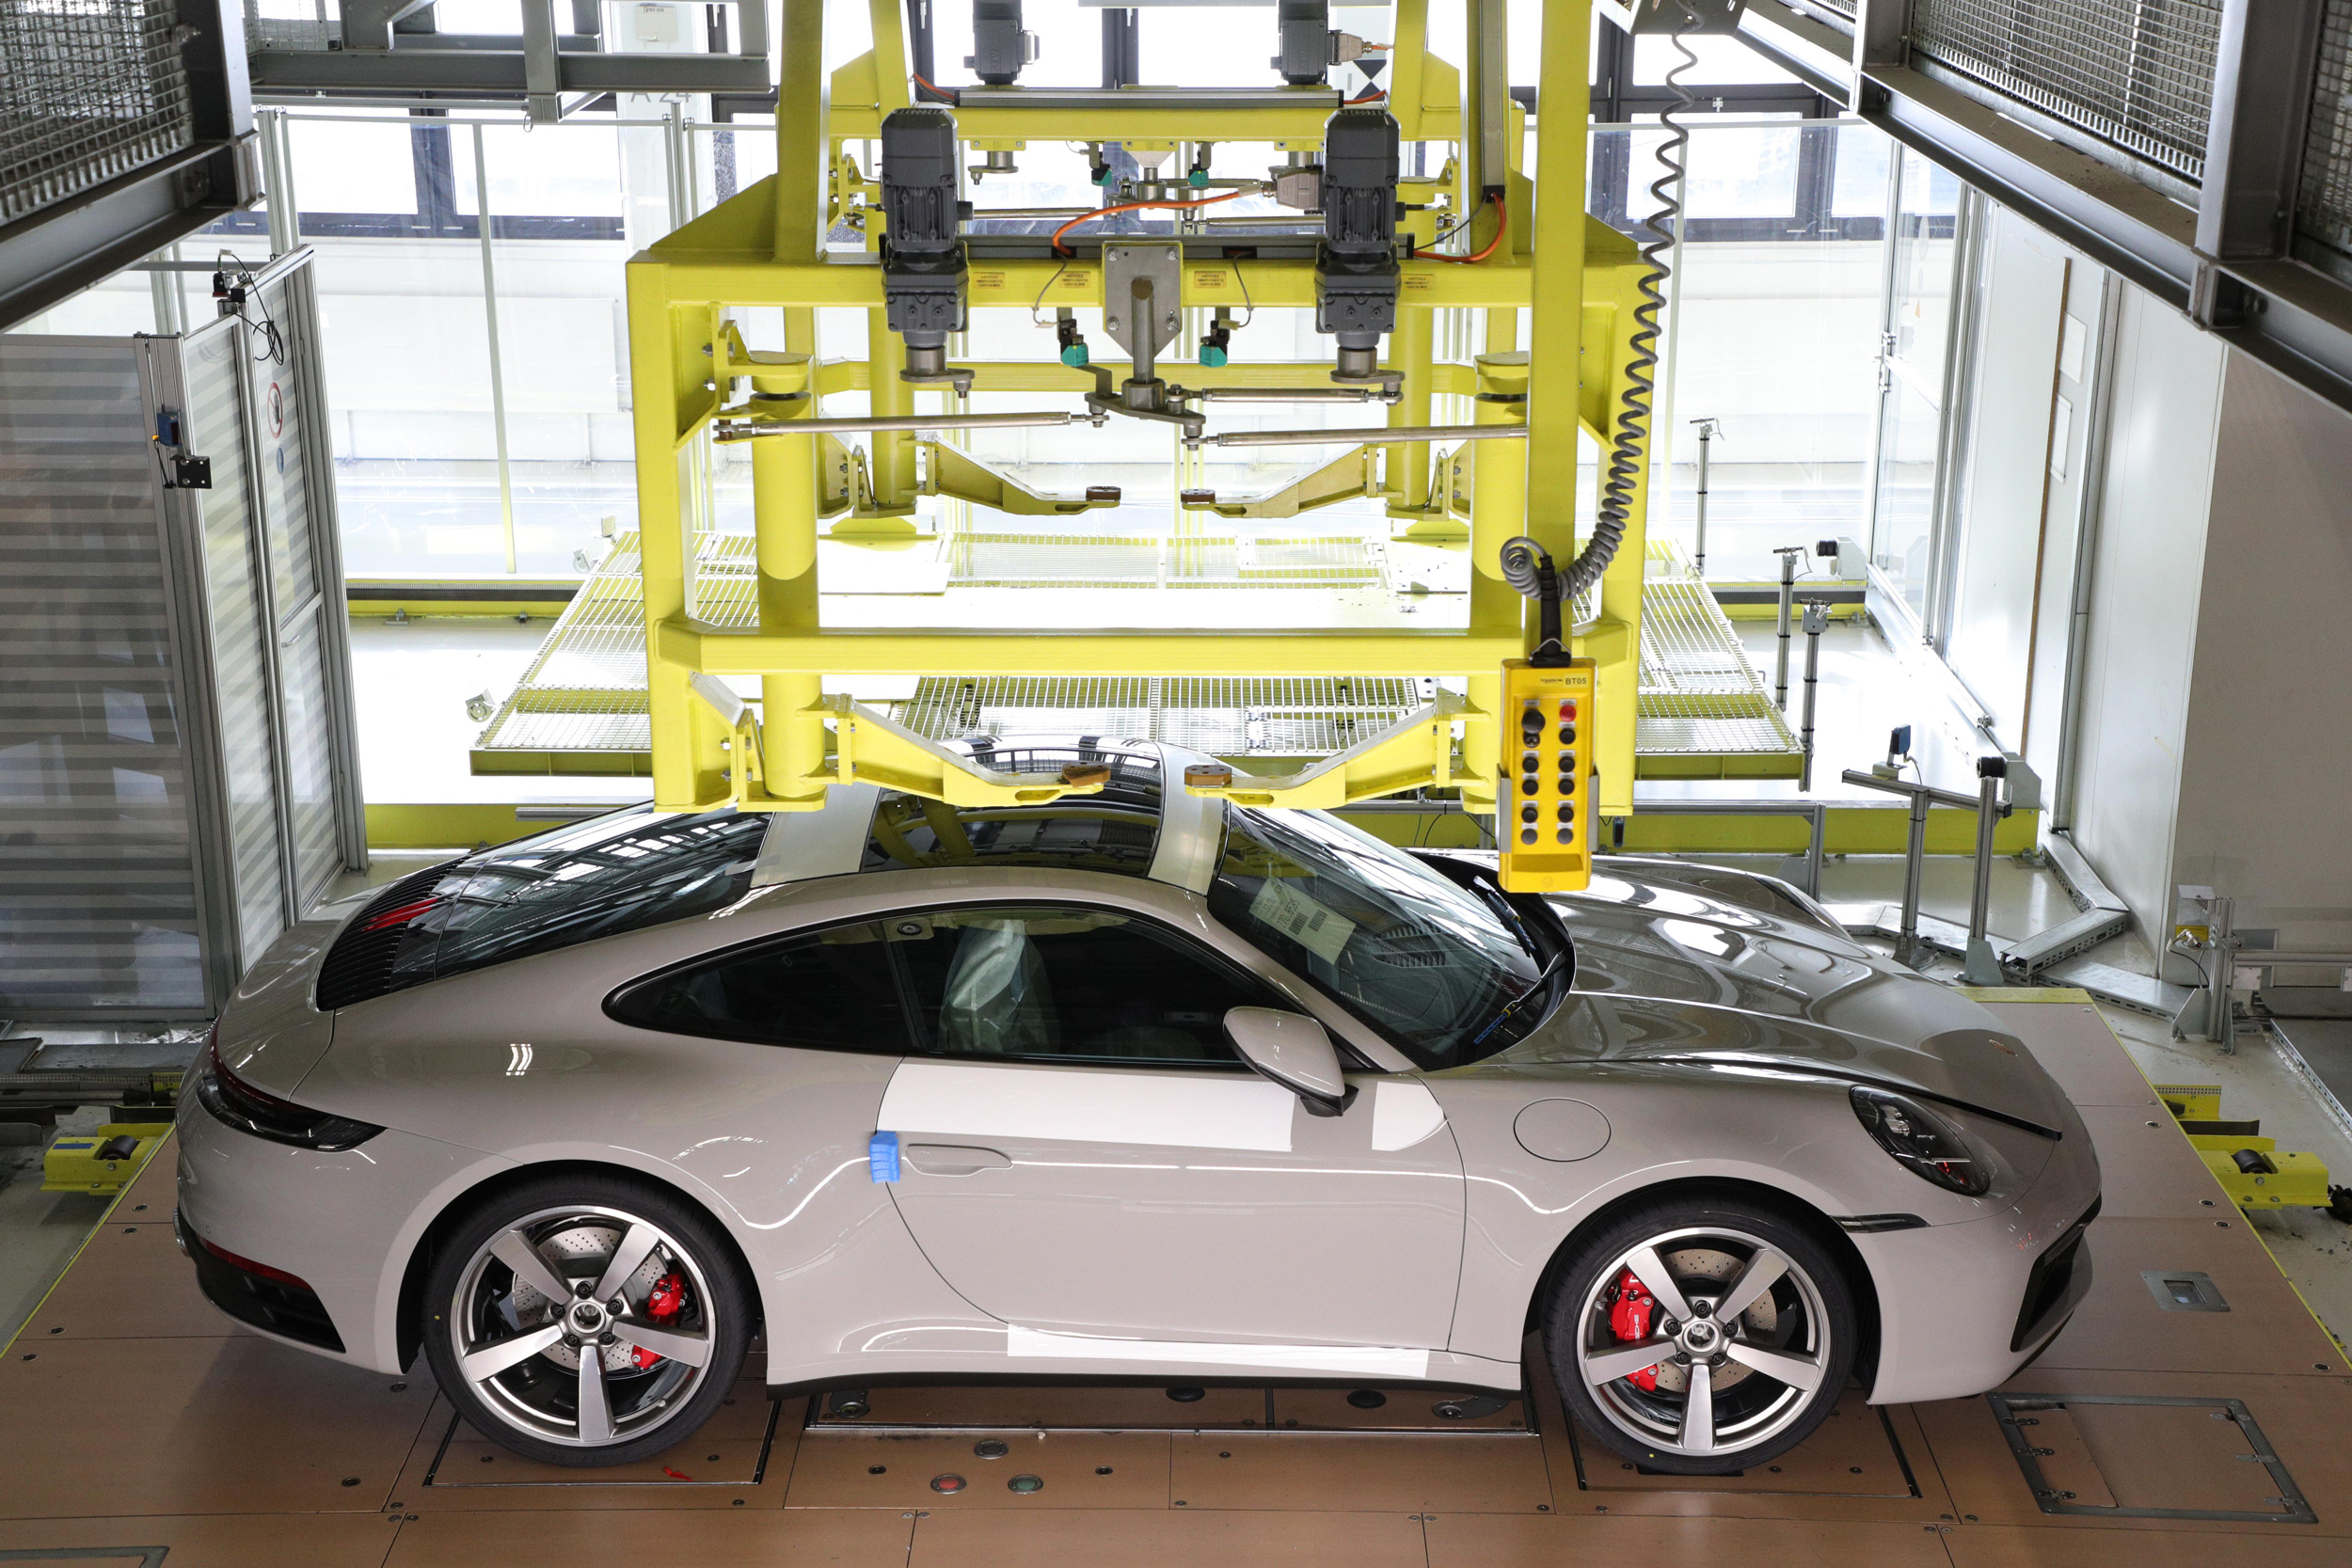 200519 Behind the Scenes - seeing your Porsche in production